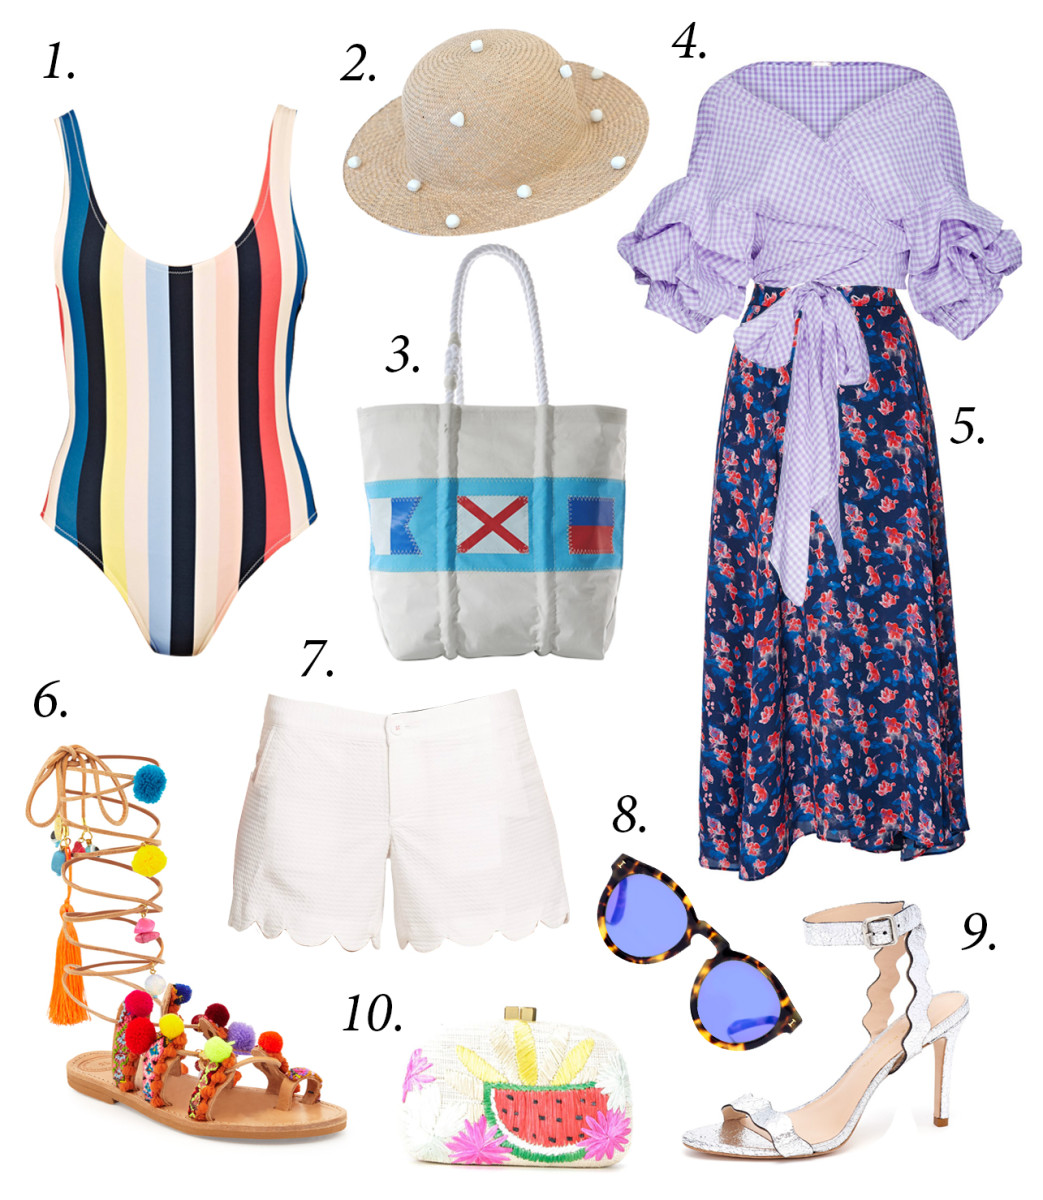 Outfits for sand or sea, if temperature allows.